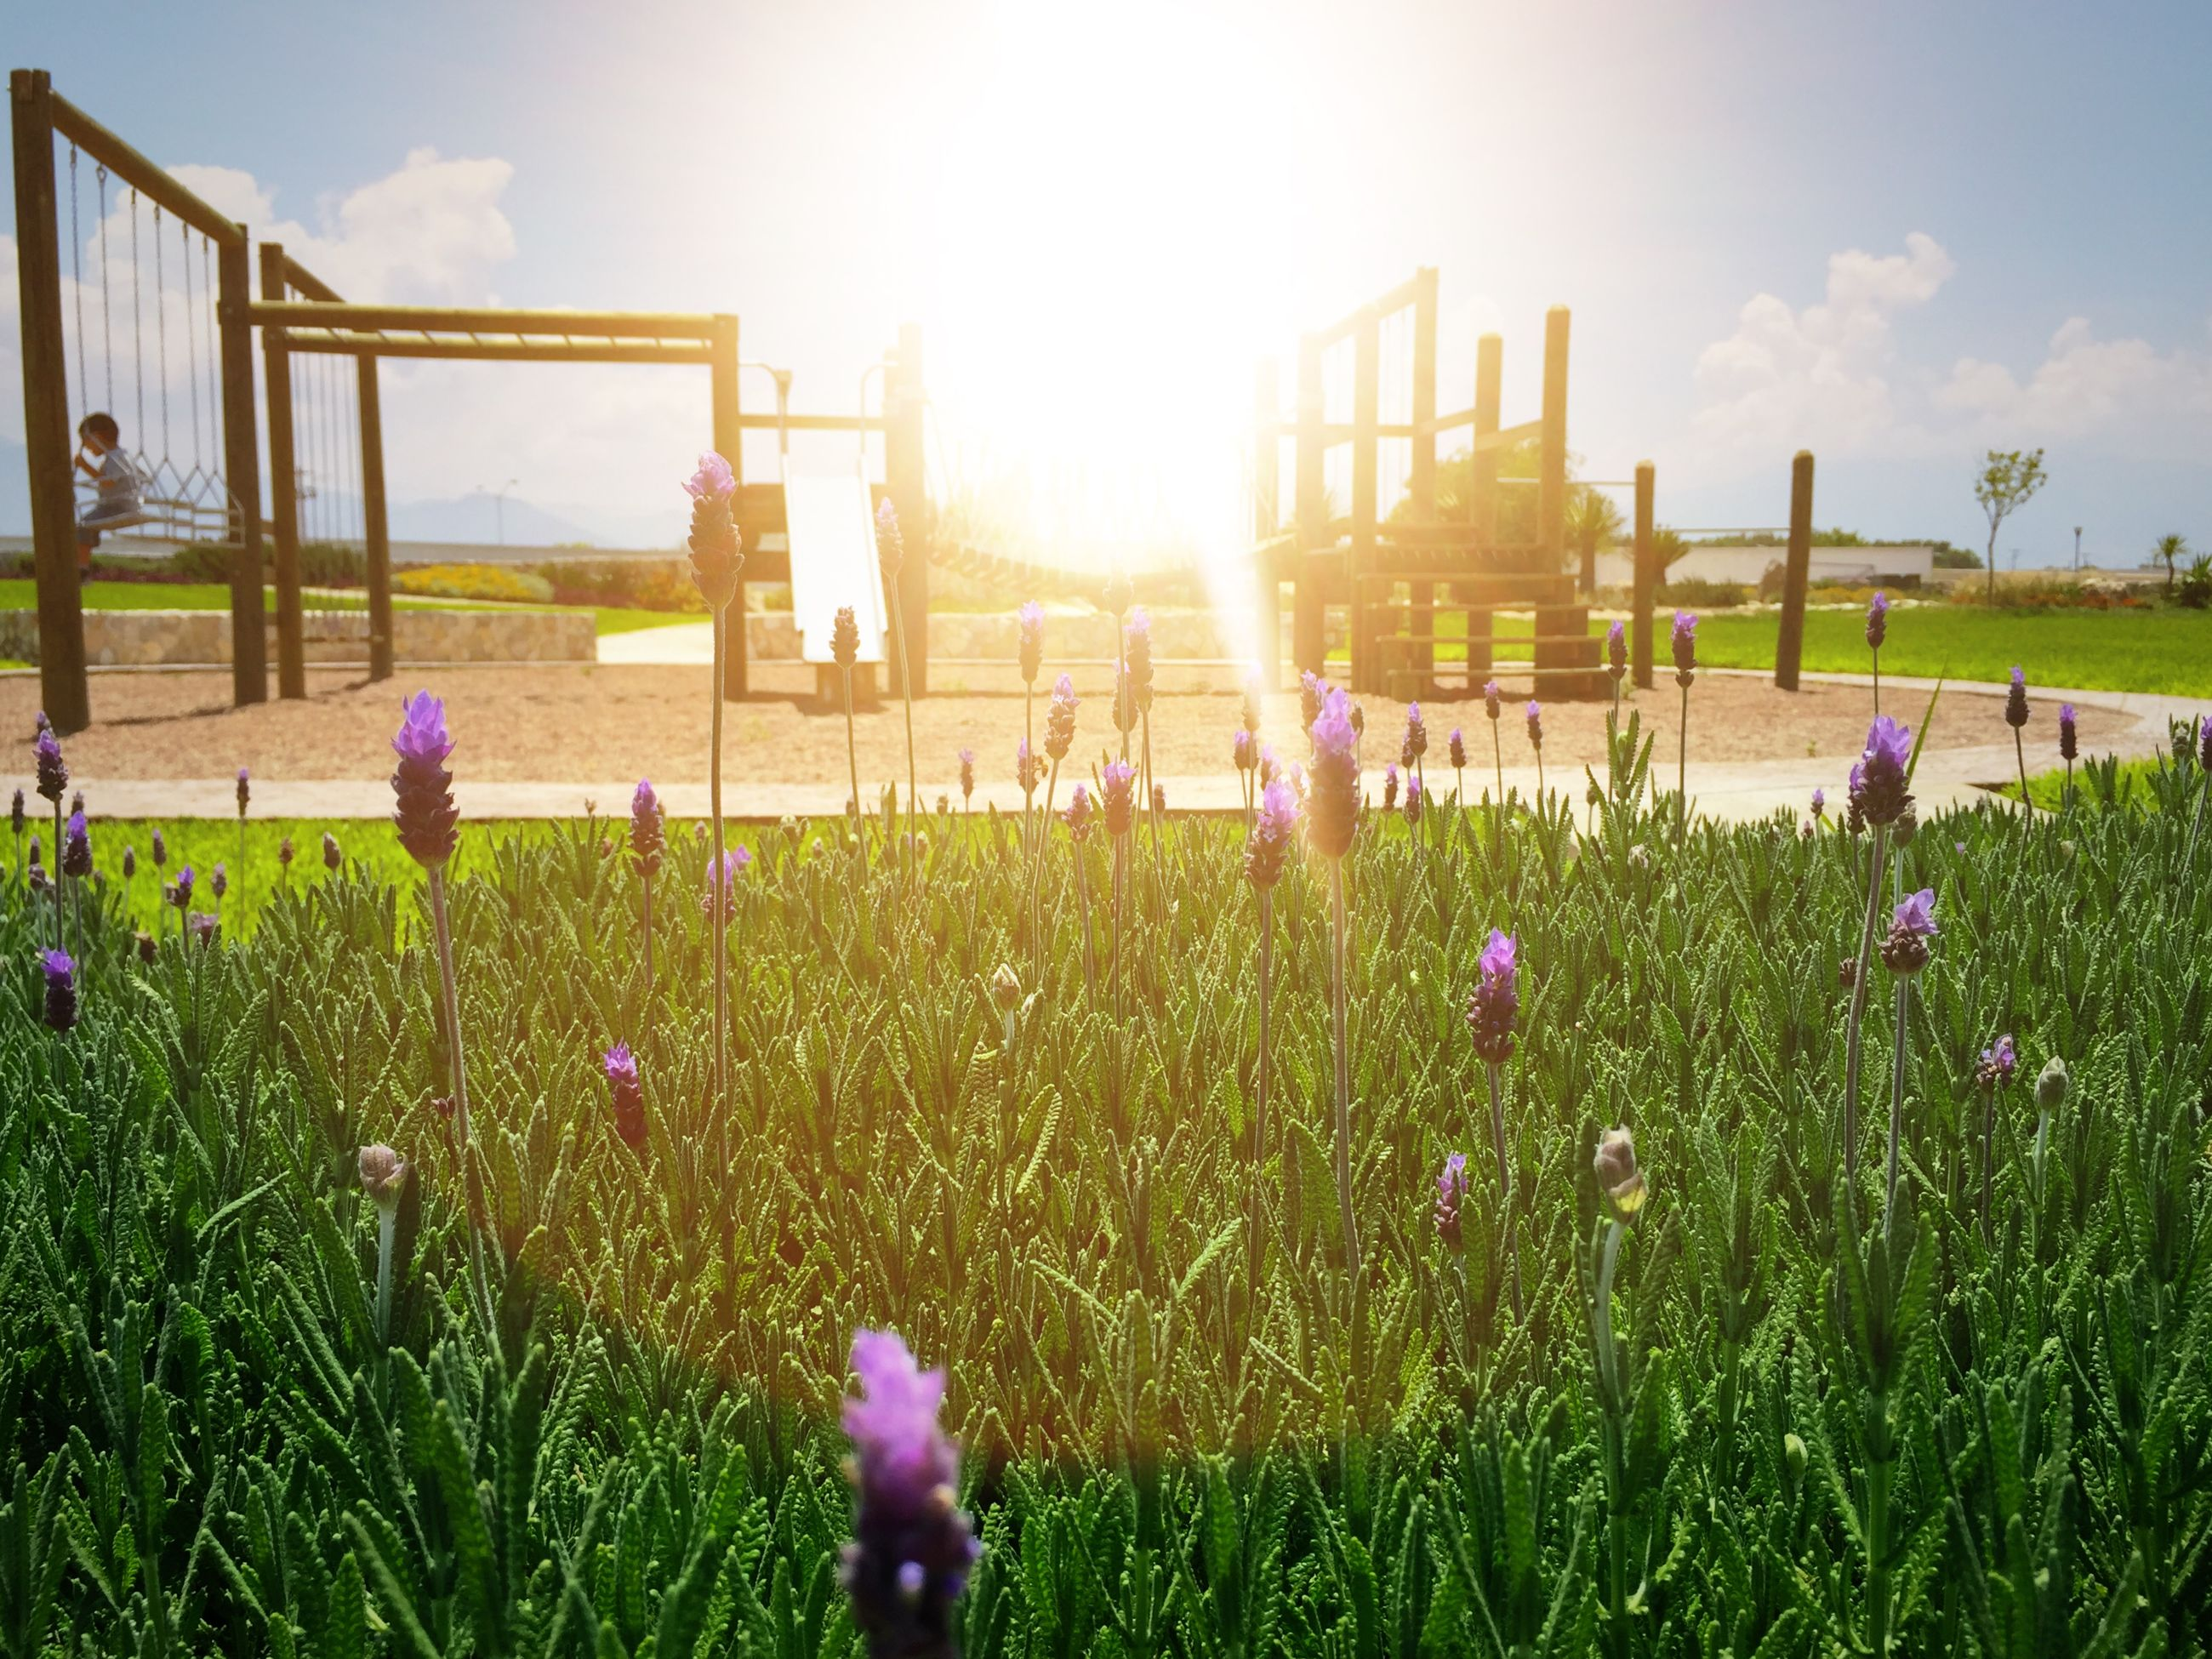 grass, field, flower, sunlight, growth, sky, sun, grassy, plant, sunbeam, building exterior, built structure, green color, freshness, lens flare, nature, lawn, architecture, day, beauty in nature